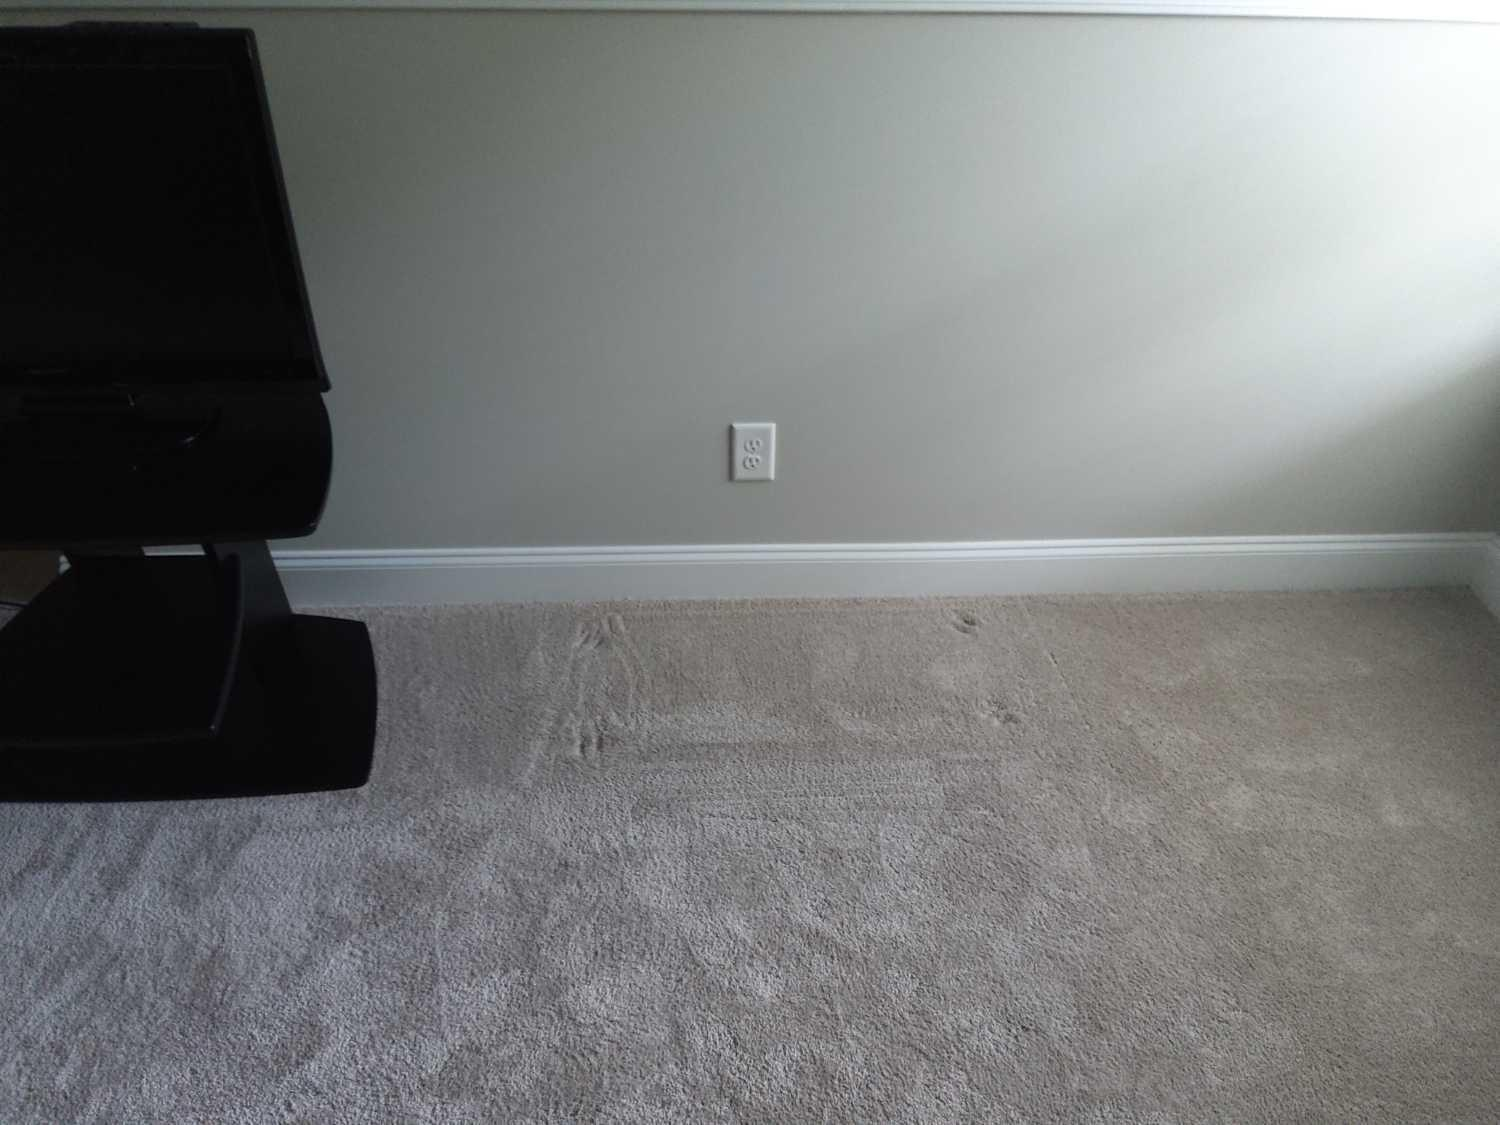 Furniture Removal Services in Gallatin, TN - After Photo